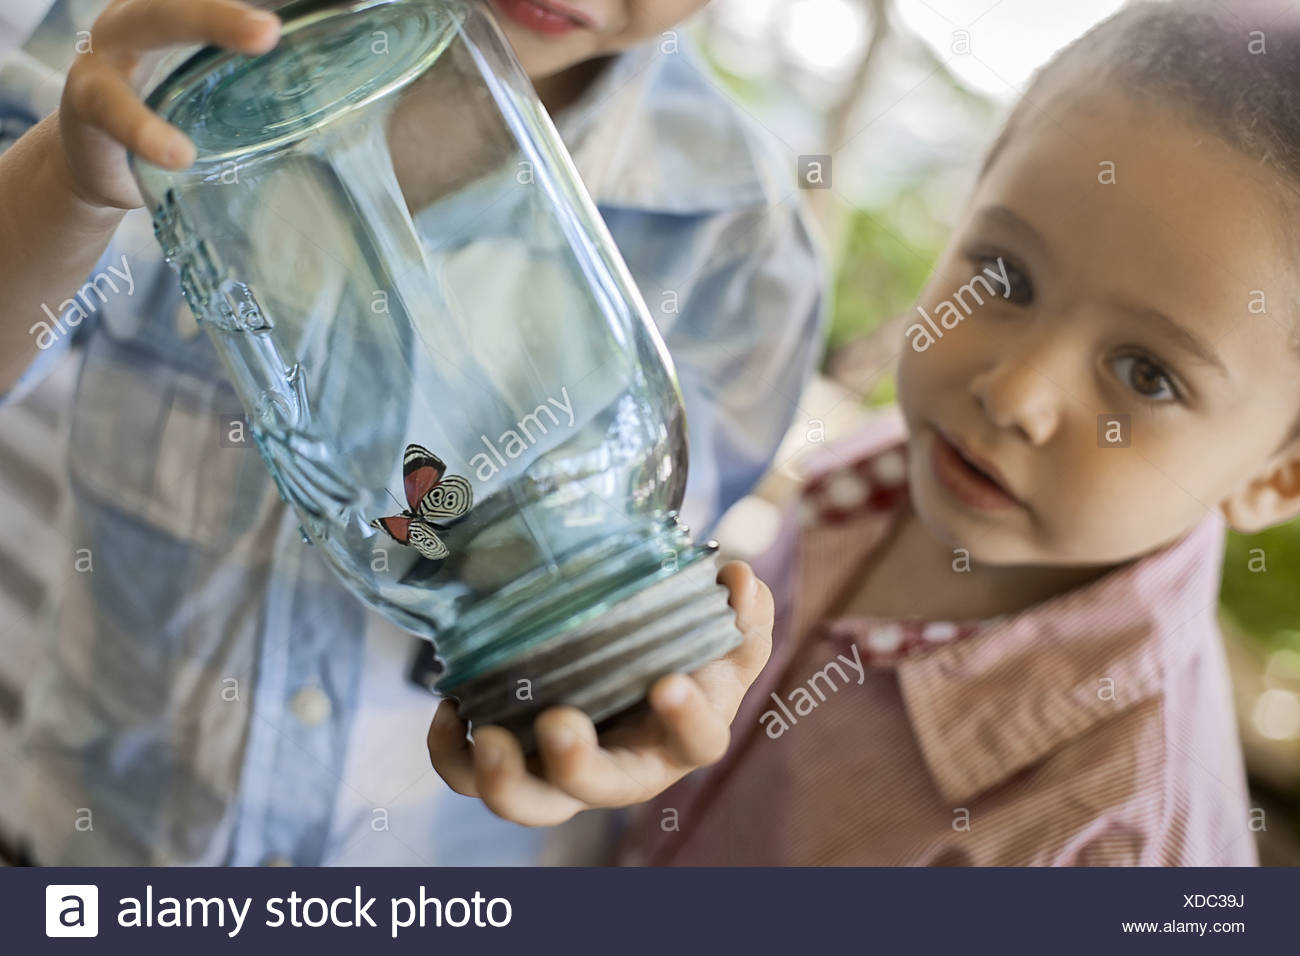 Utah USA child holding glass jar and examining butterfly - Stock Image